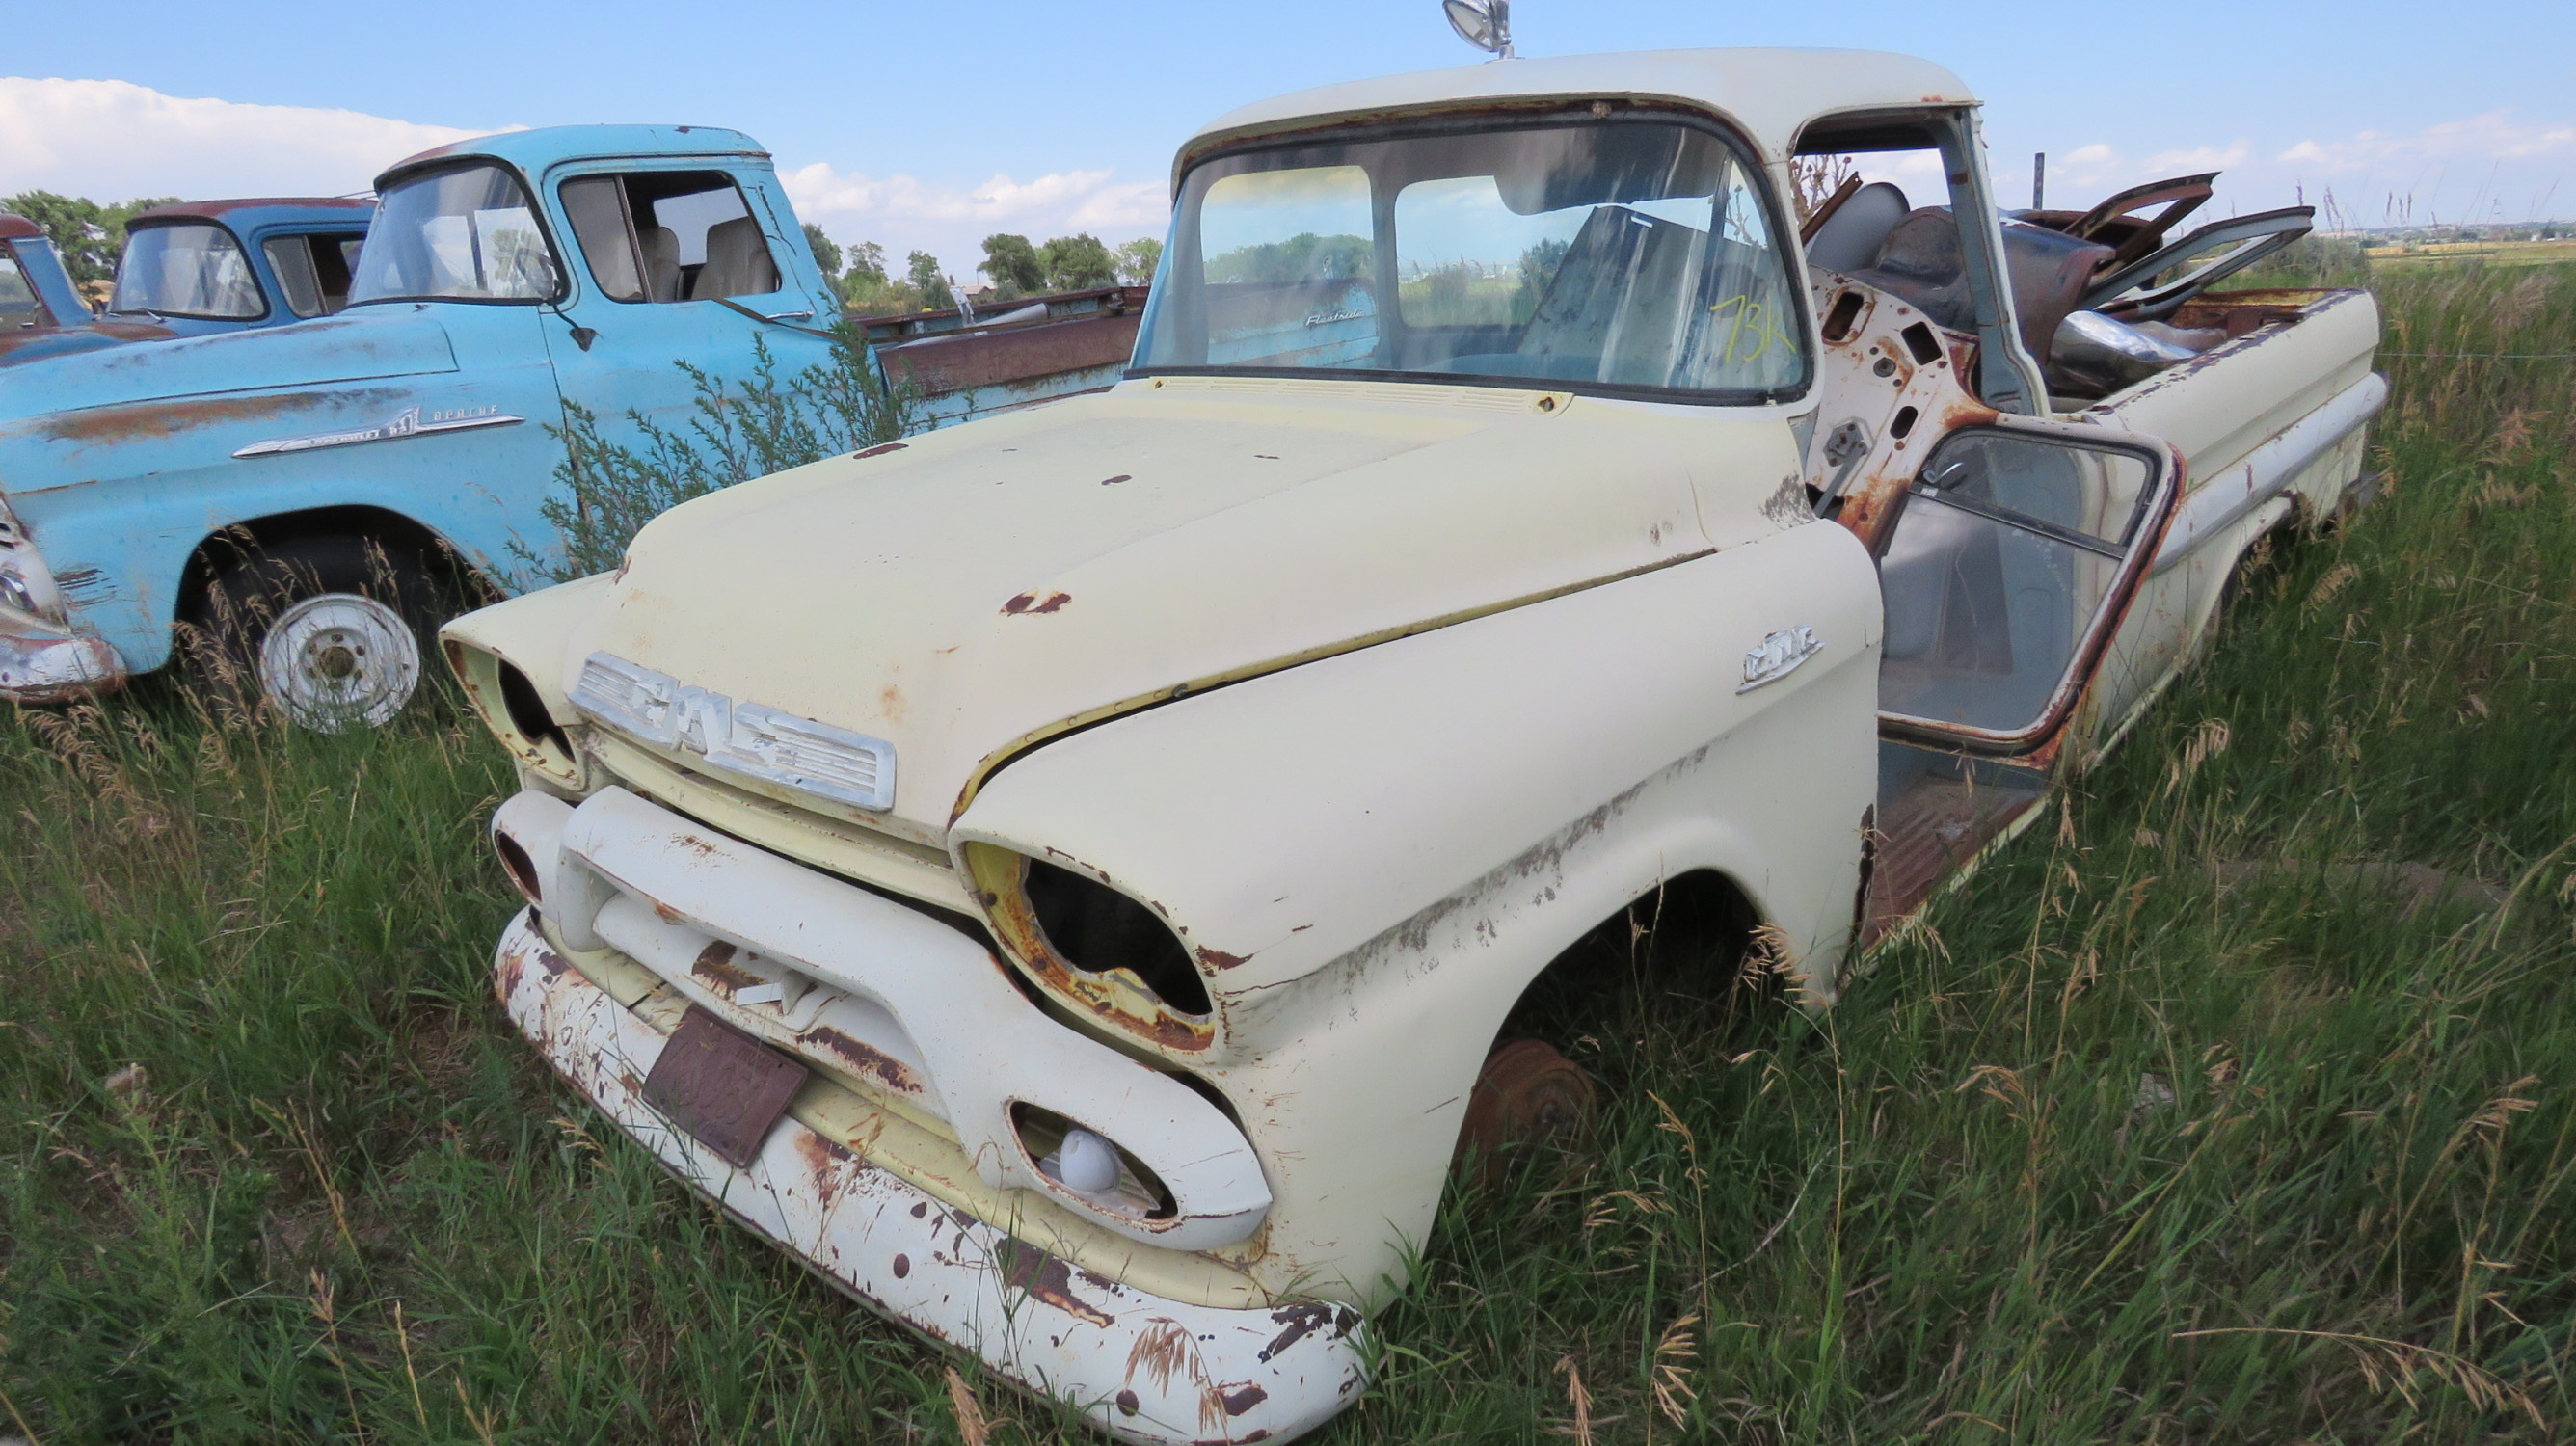 1955 GMC FLEETSIDE PICKUP FOR PARTS OR PROJECT - Image 1